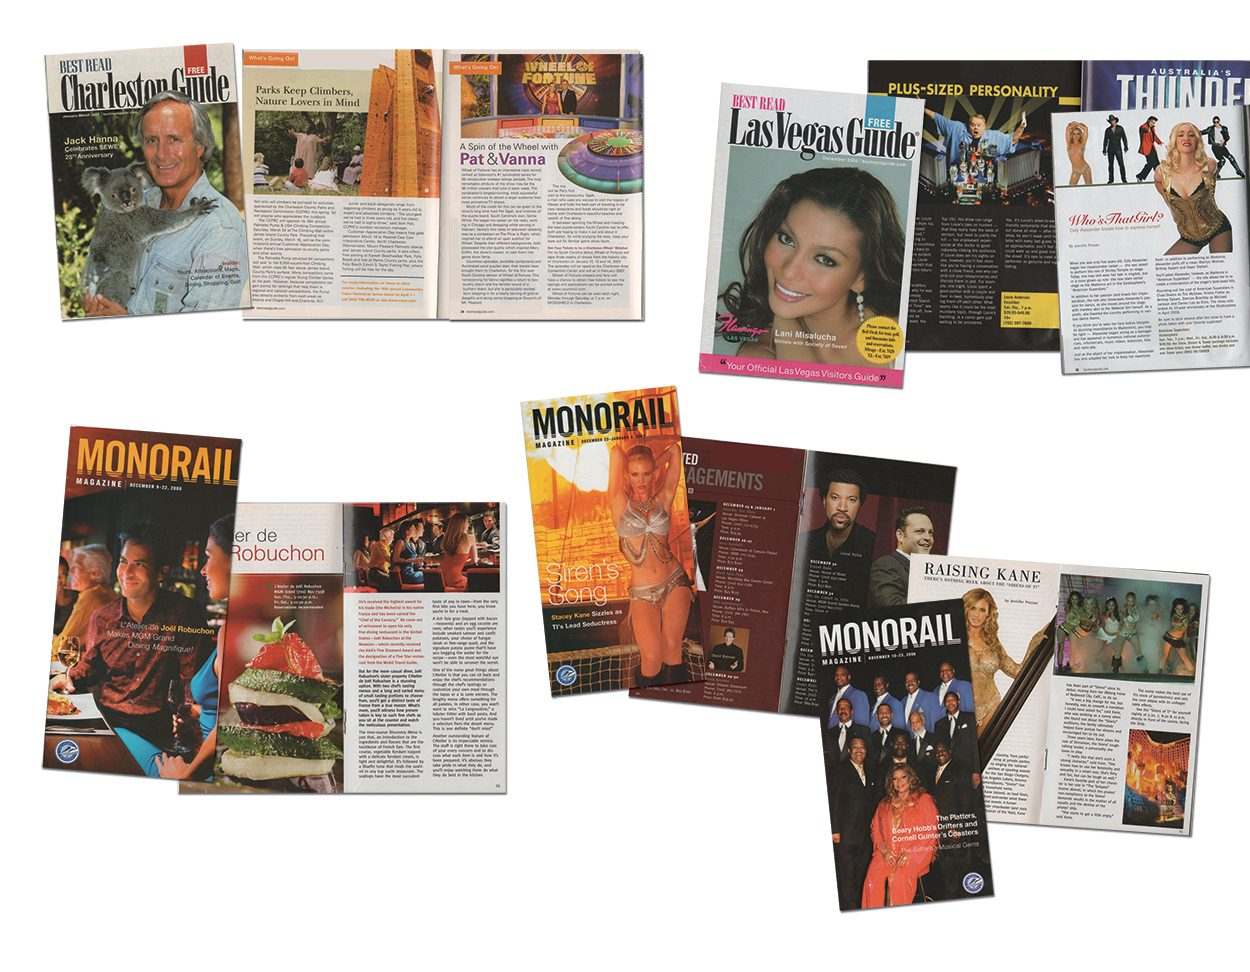 Guest Information Magazine Print Layout Design by DreamBig Creative Minneapolis, MN